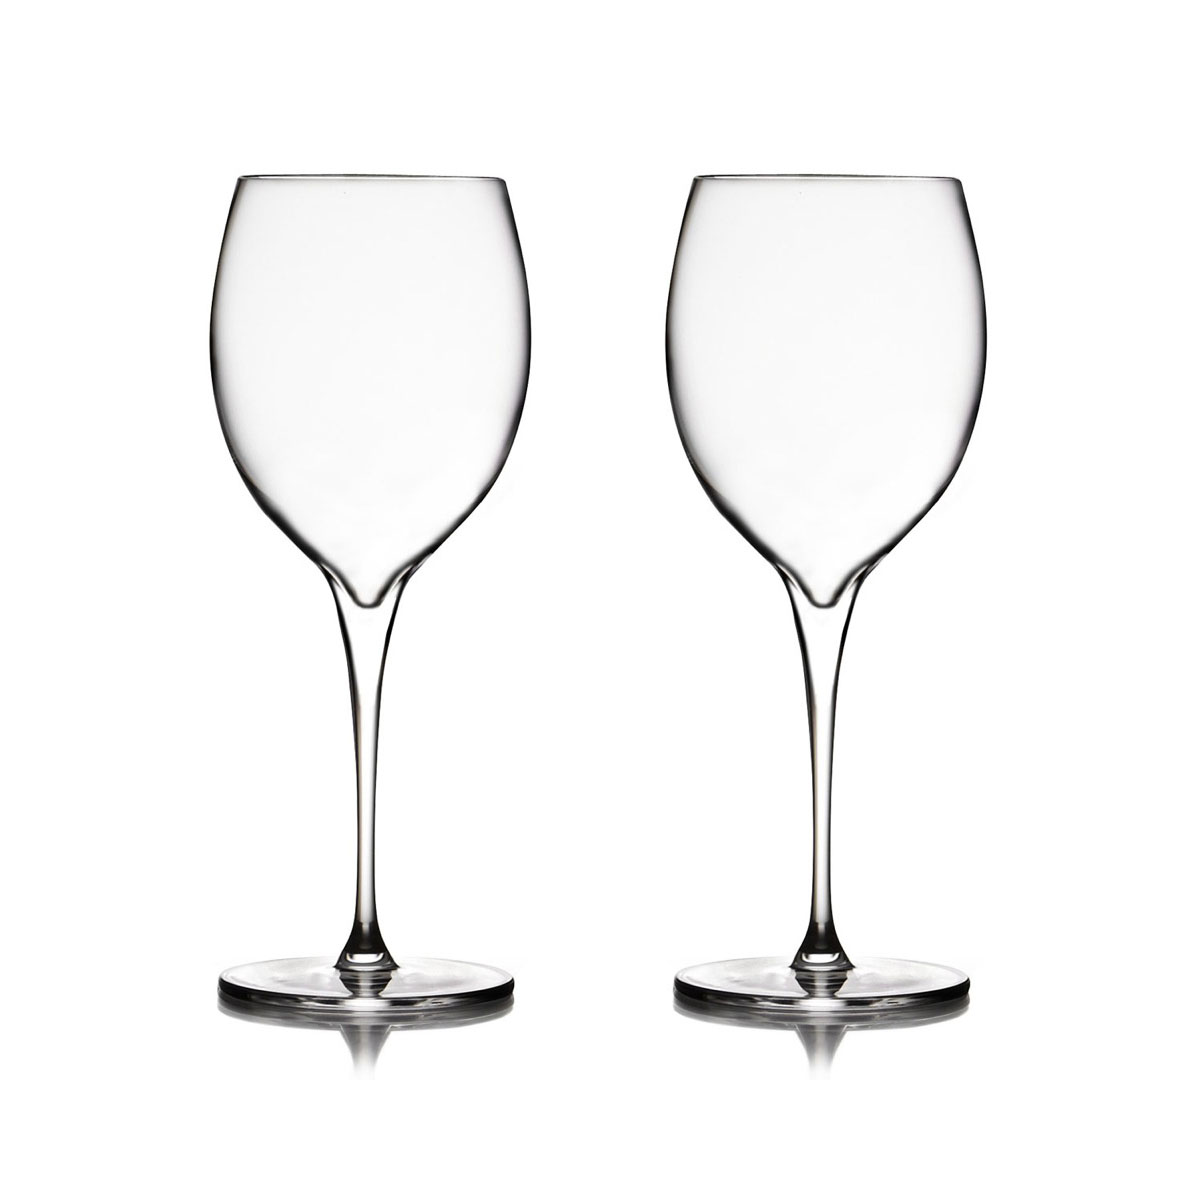 Nambe Vie Chardonnay Wine Glasses, Pair